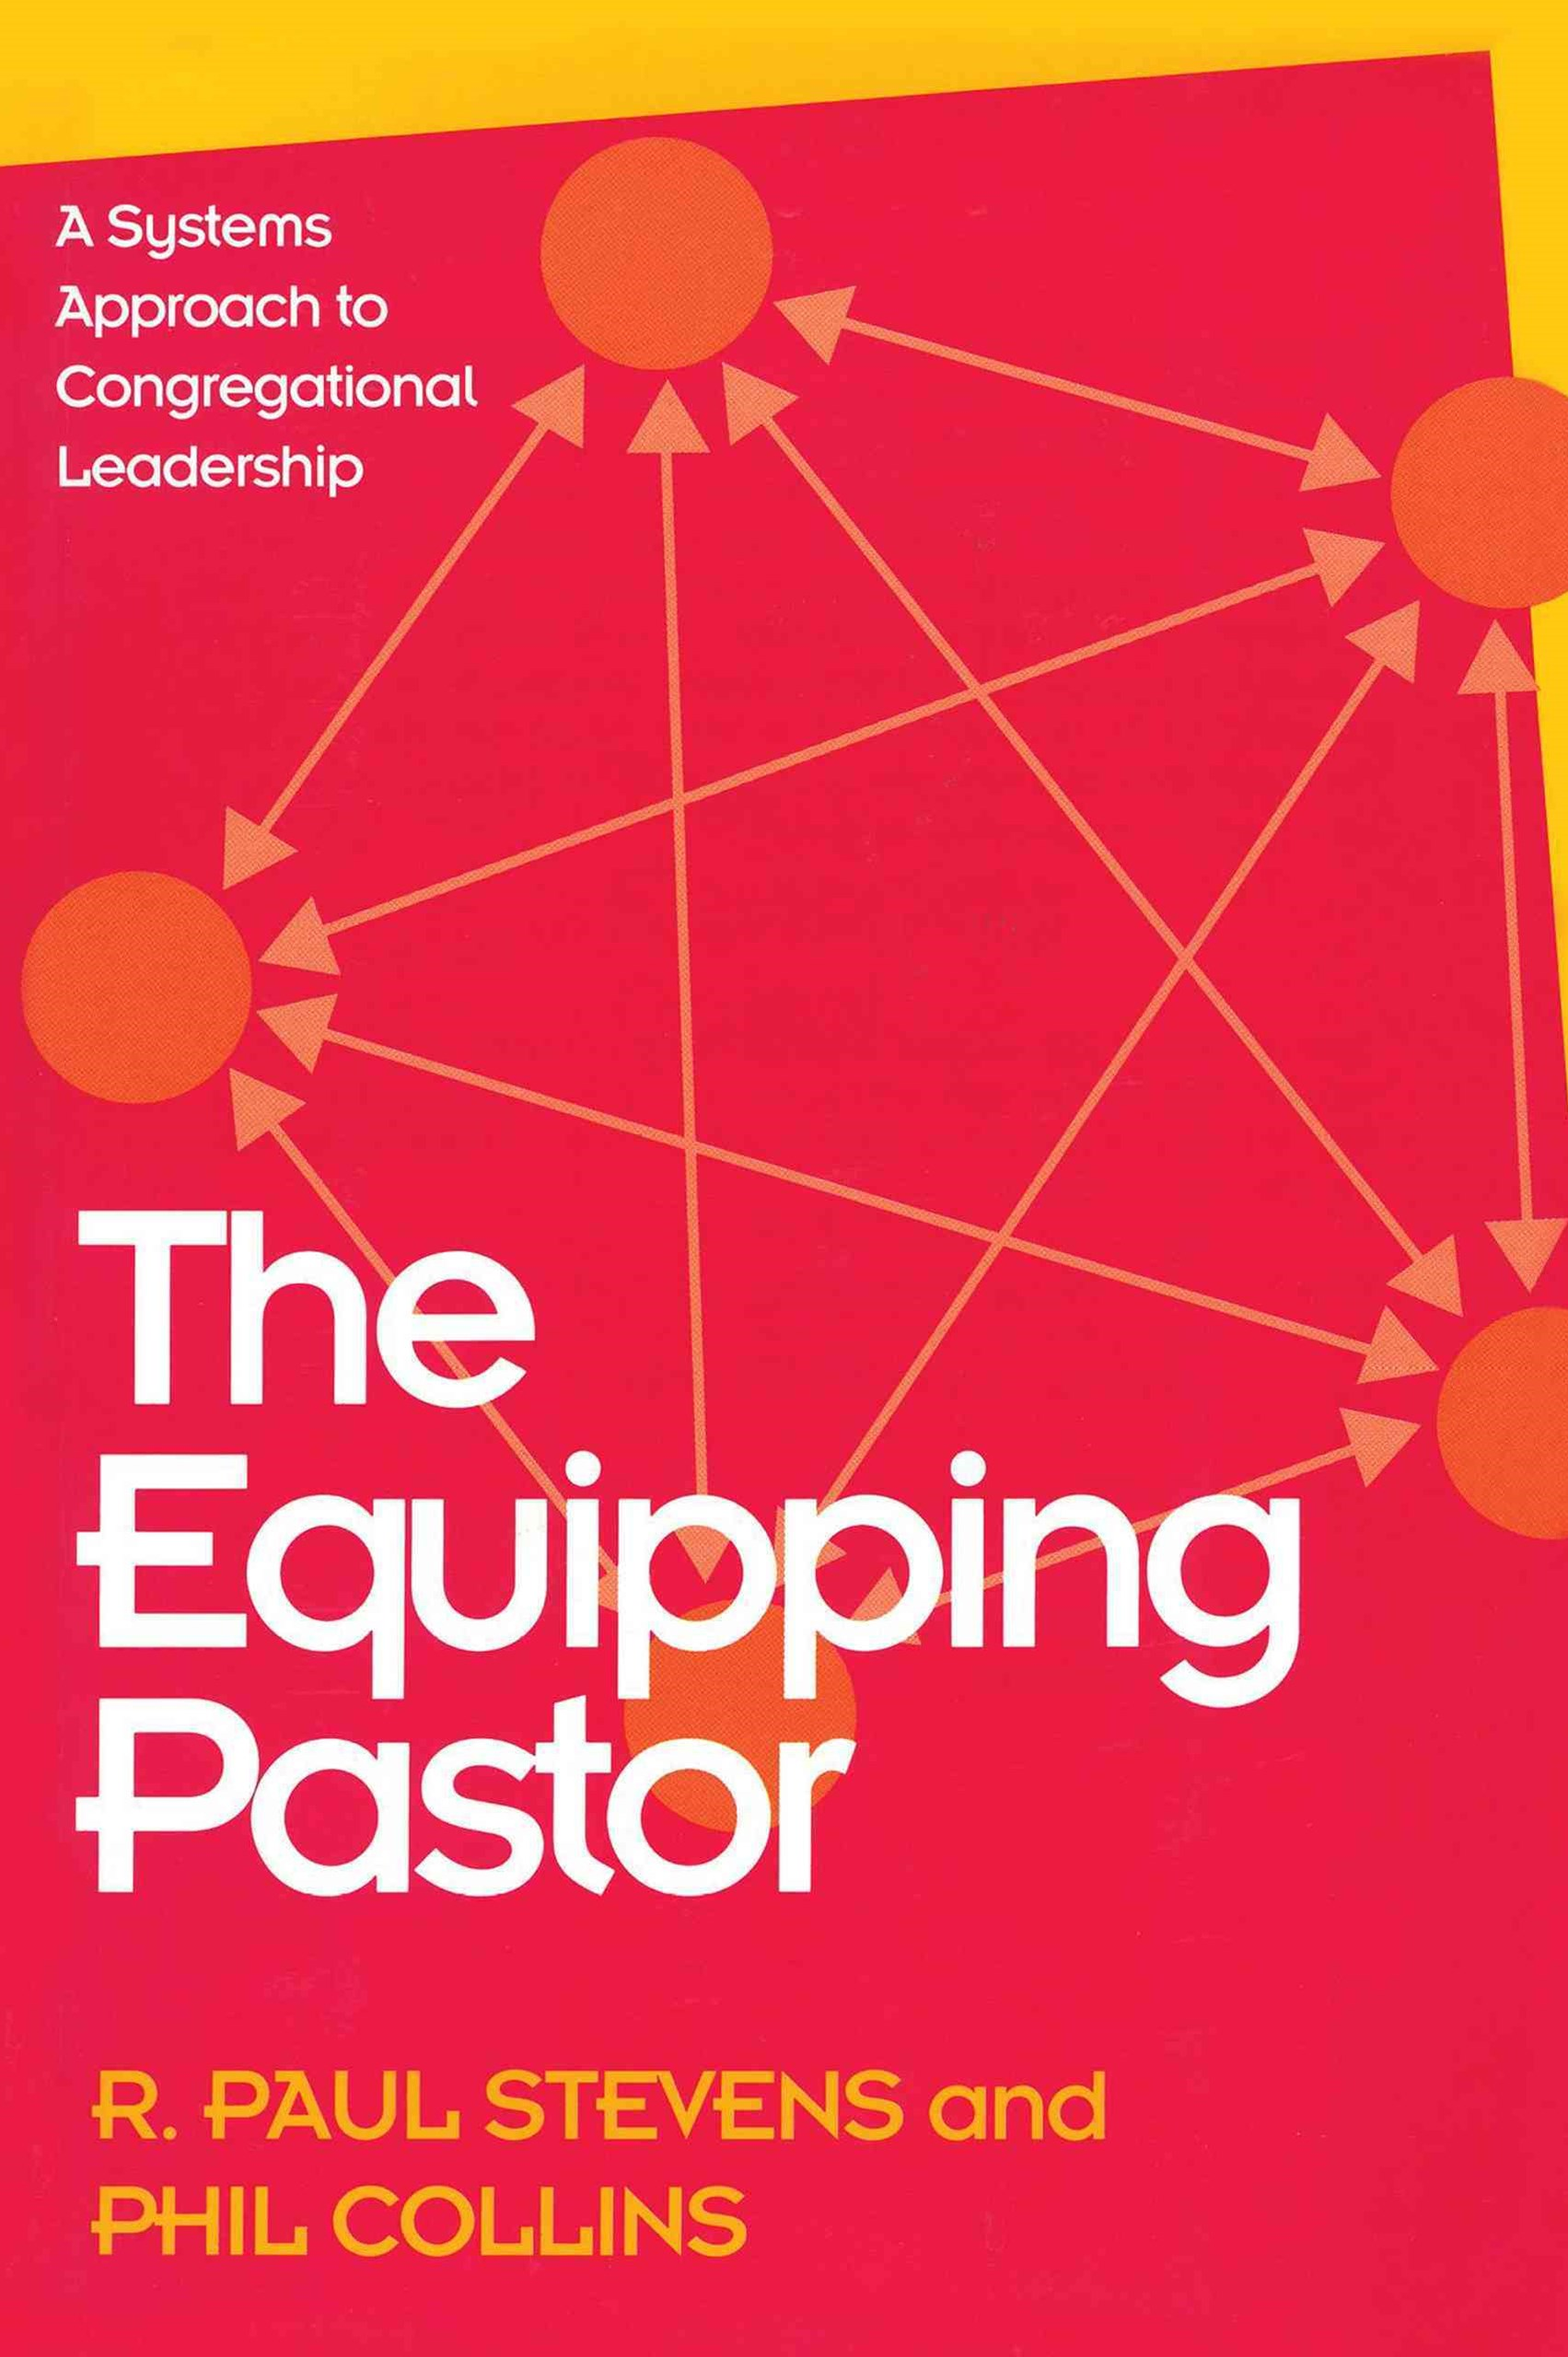 The Equipping Pastor